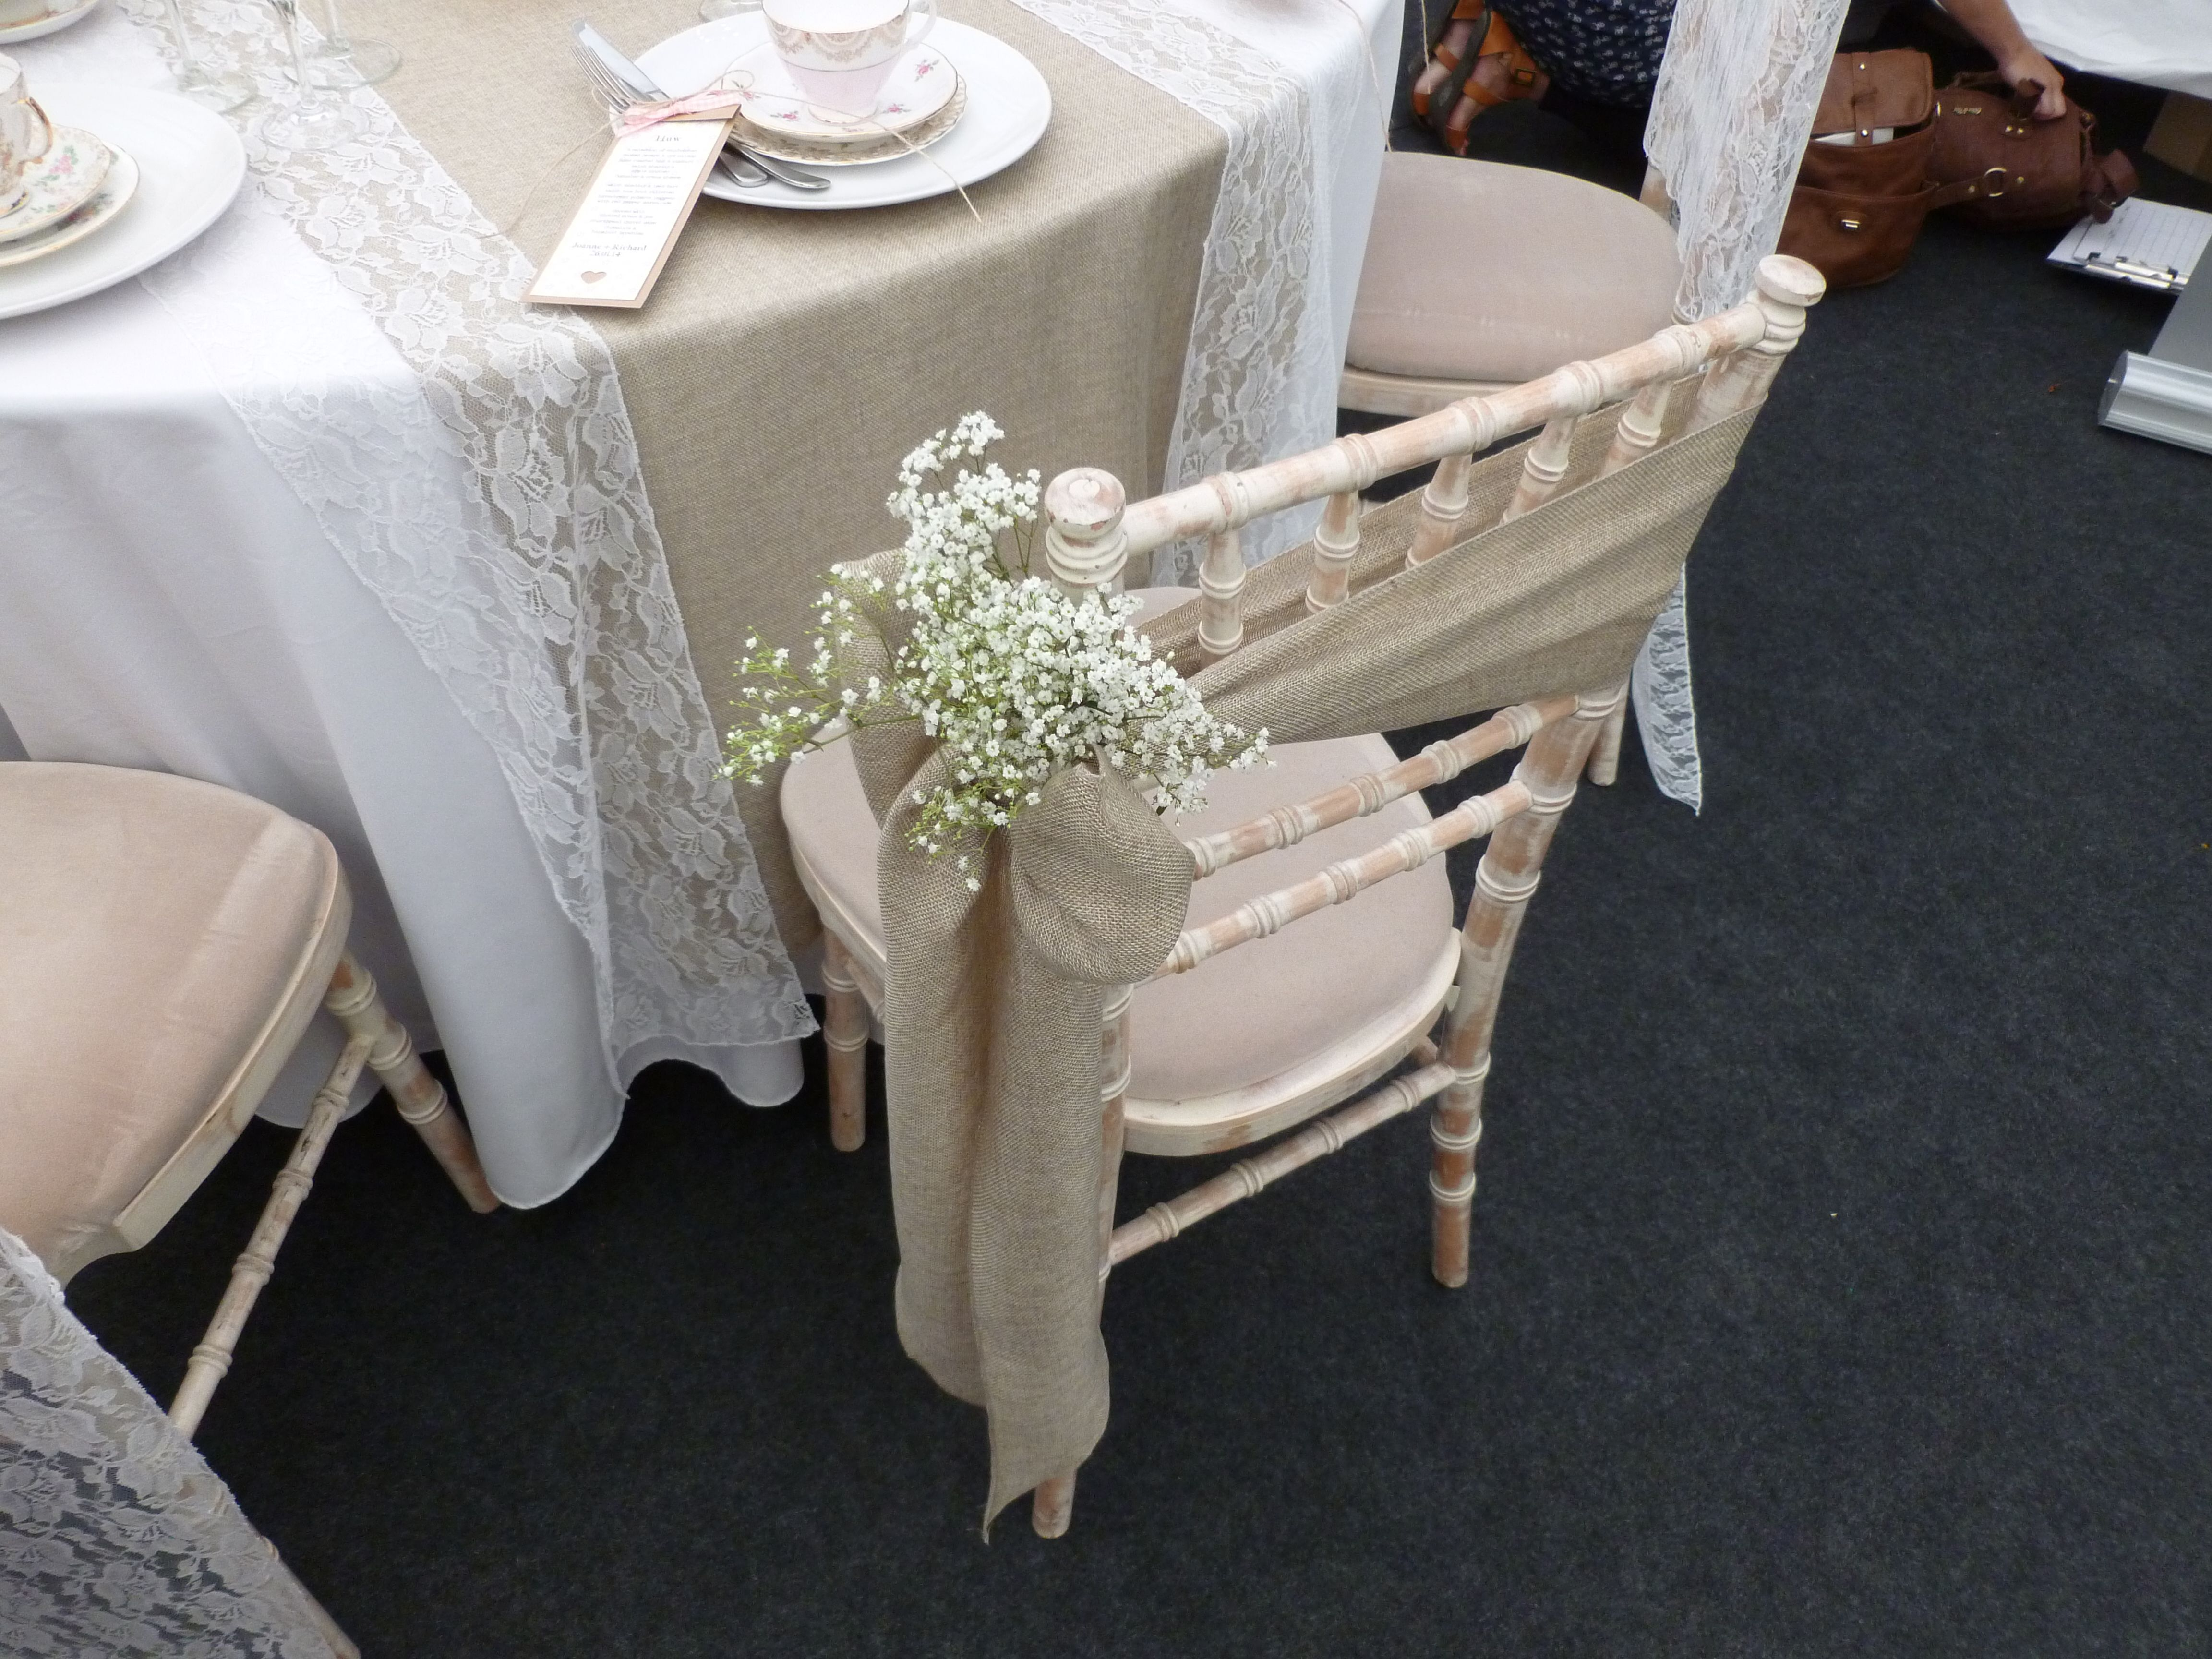 Burlap Sash With Babies Breath Still A Popular Choice Dressed By Simply Bows And Chair Covers Chaircovers W Chair Covers Wedding Chair Covers Wedding Chairs